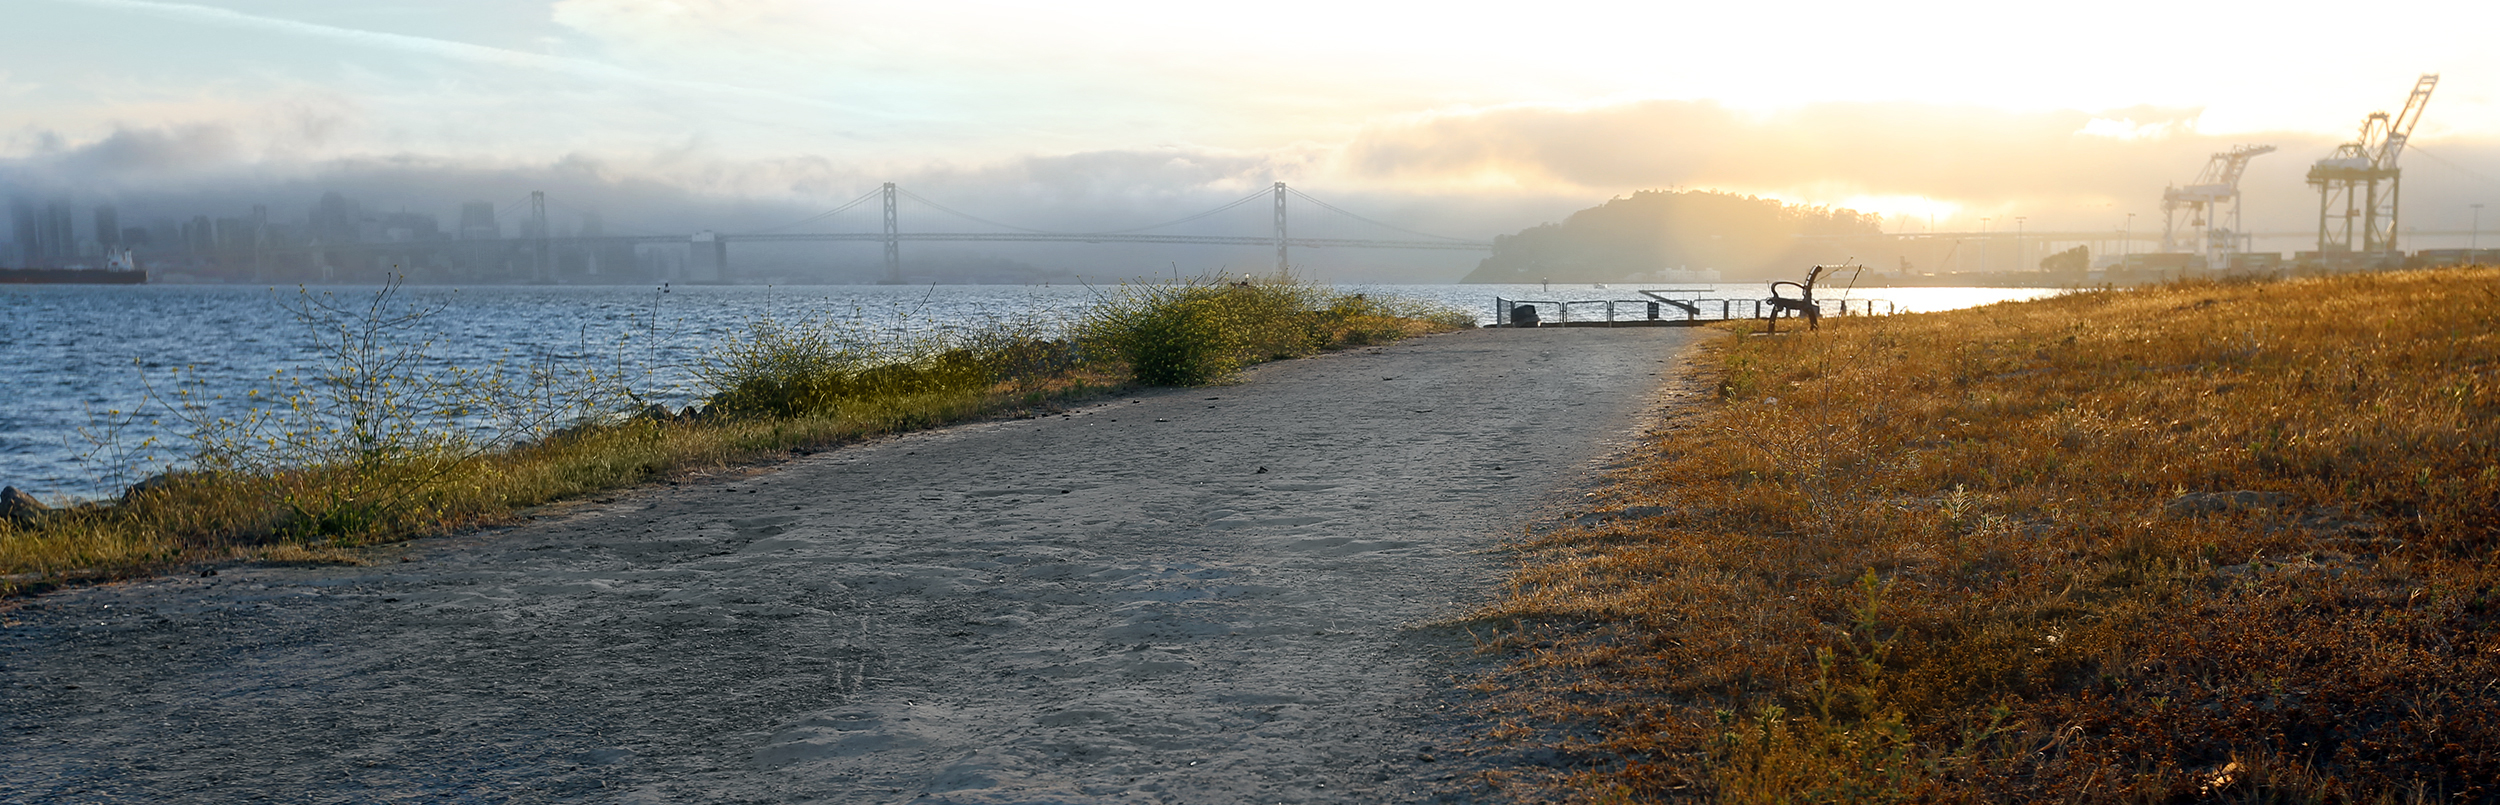 A view from Middle Harbor Shoreline in Oakland